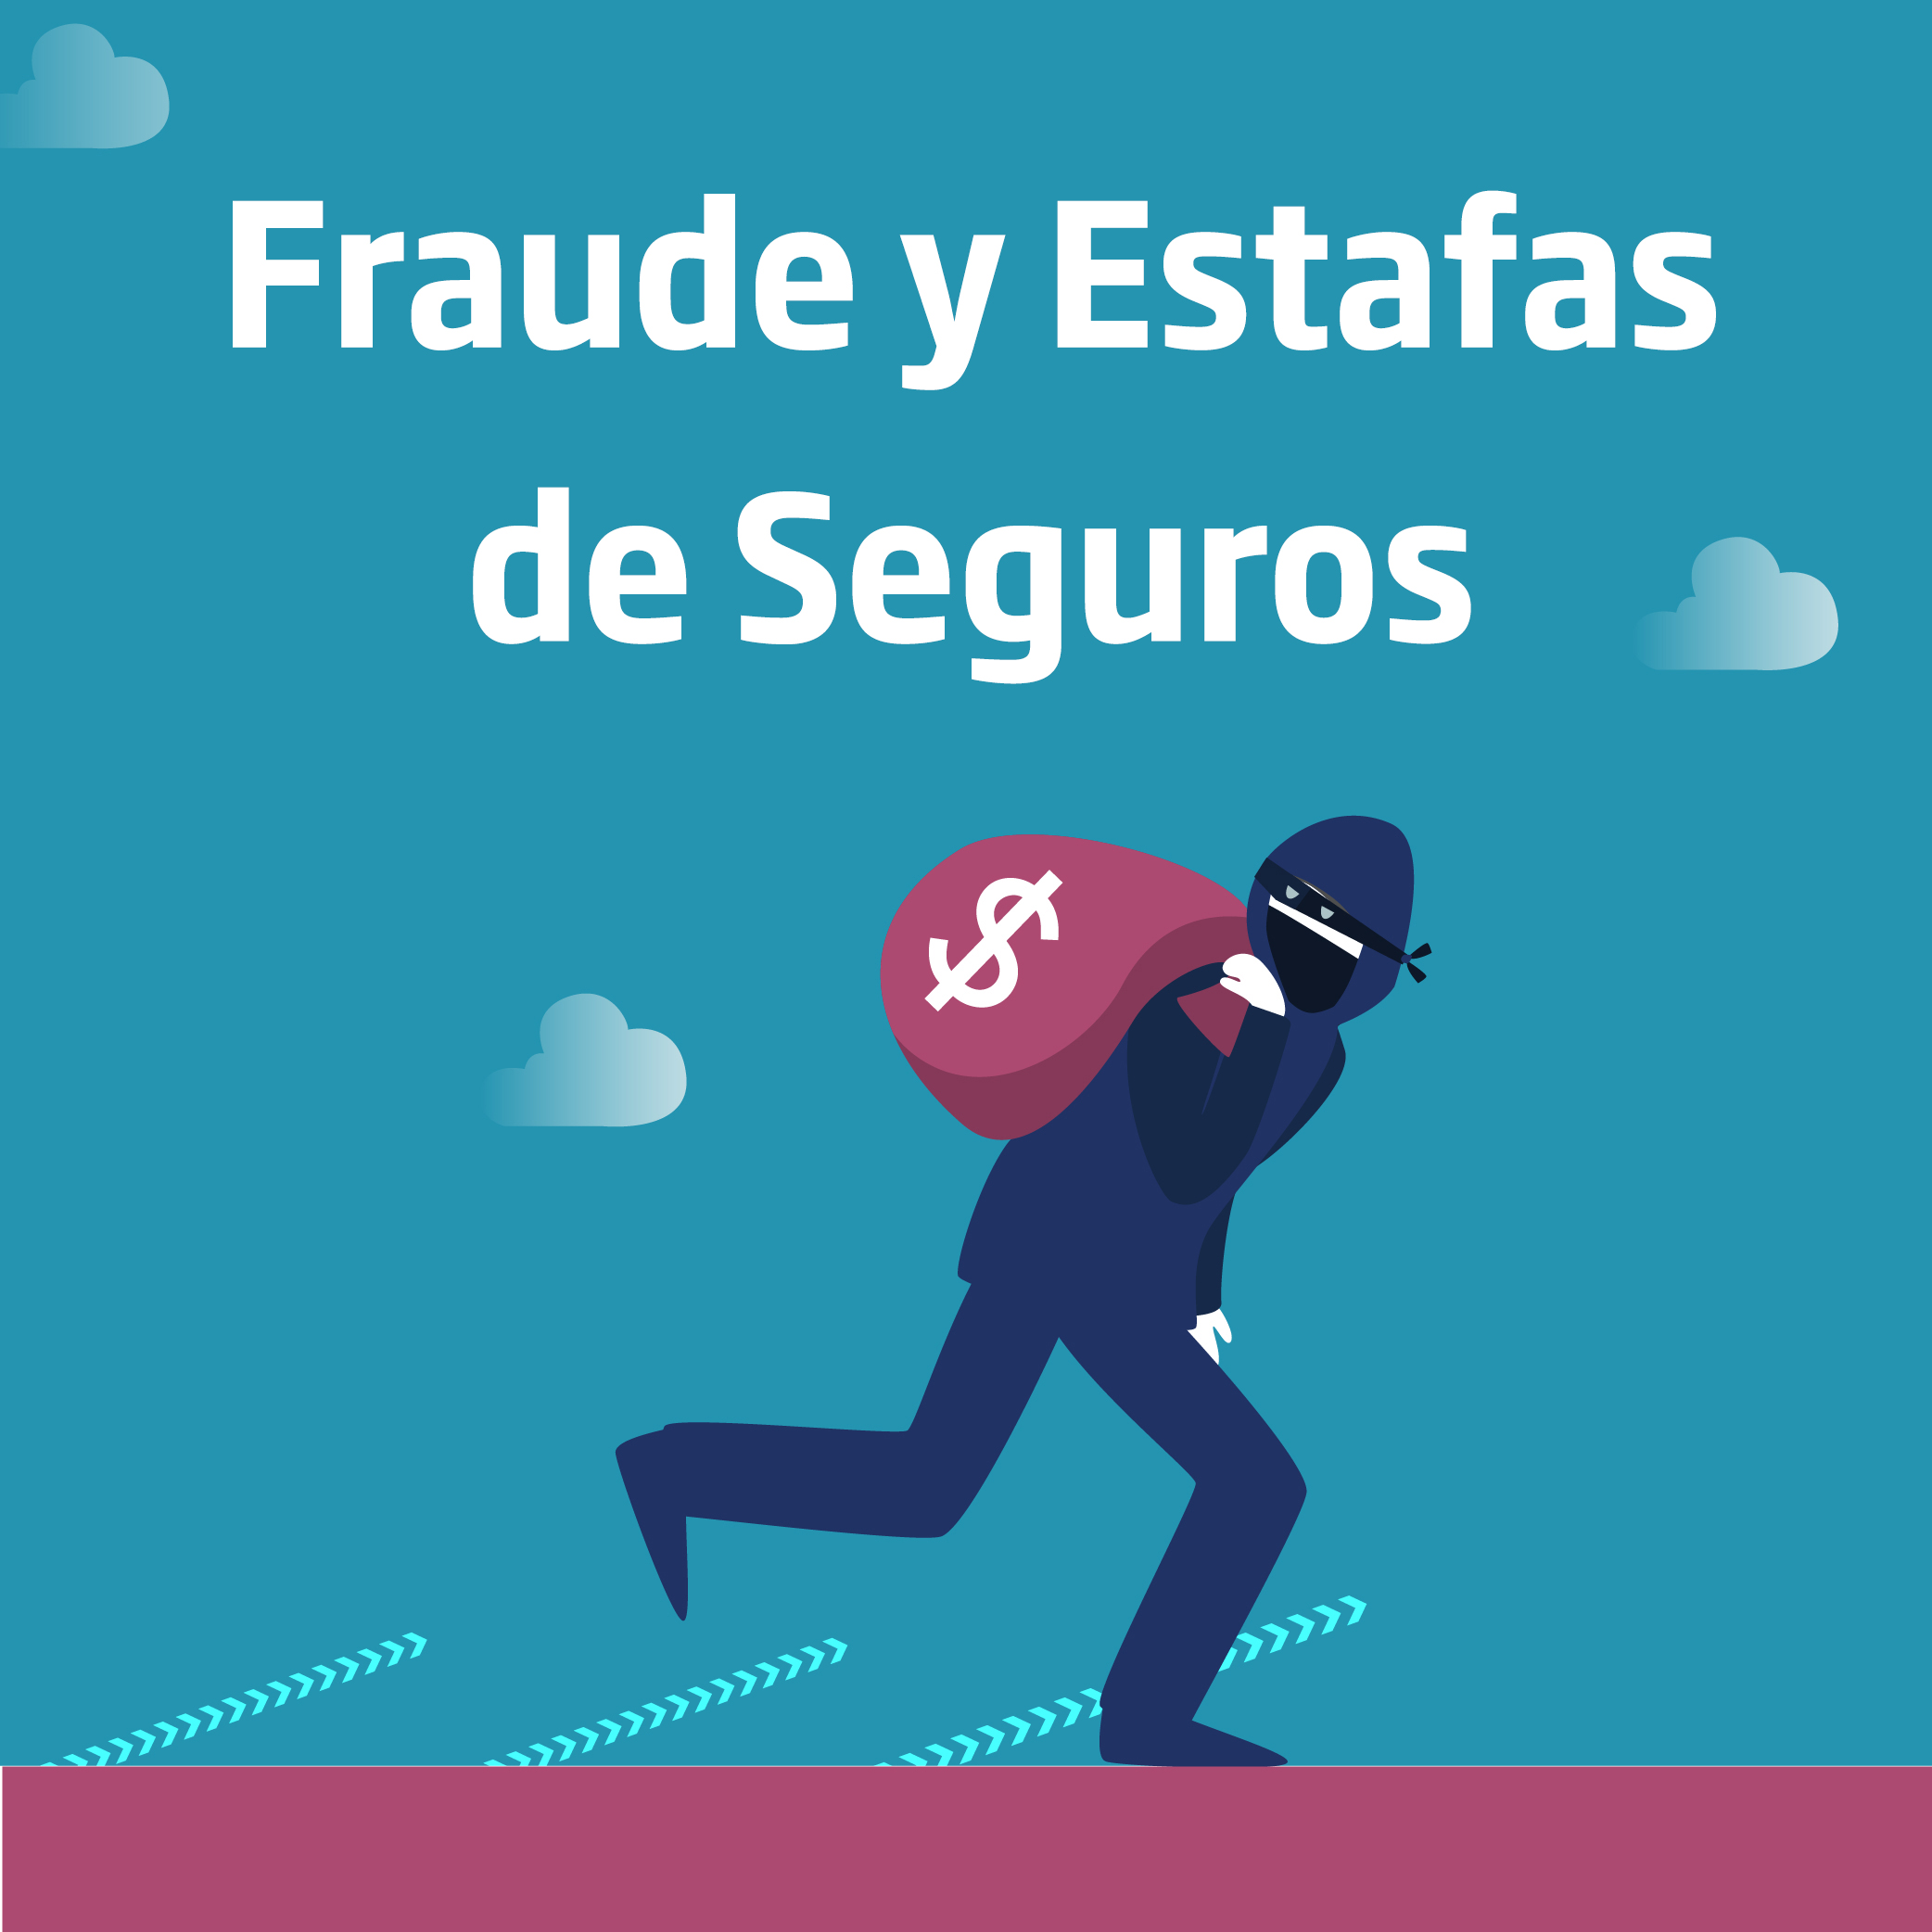 Folleto sobre Fraude y Estafas de Seguros